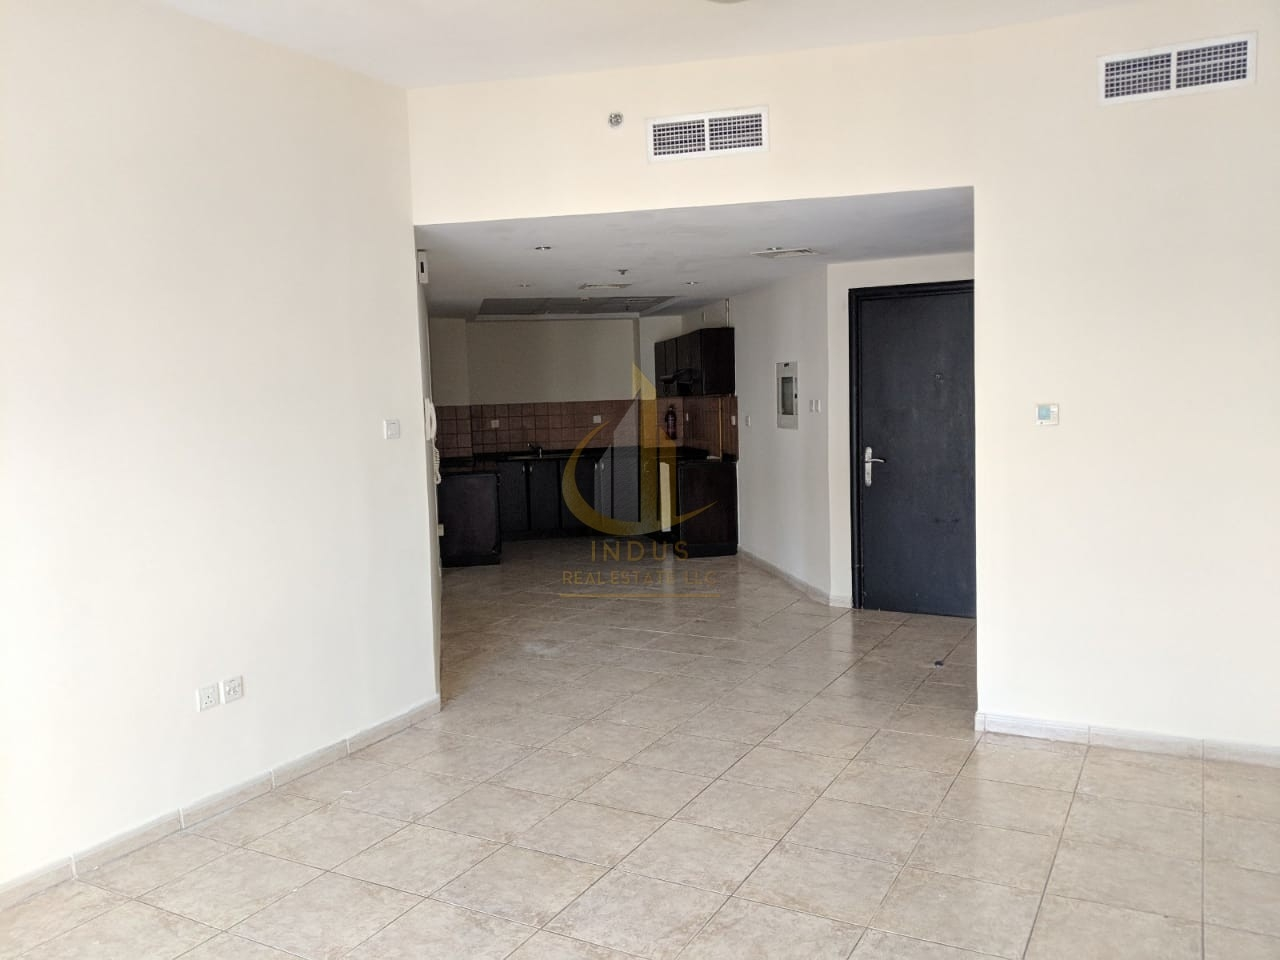 Unfurnished 2 BHK | Ready to move in | Good Price Main image